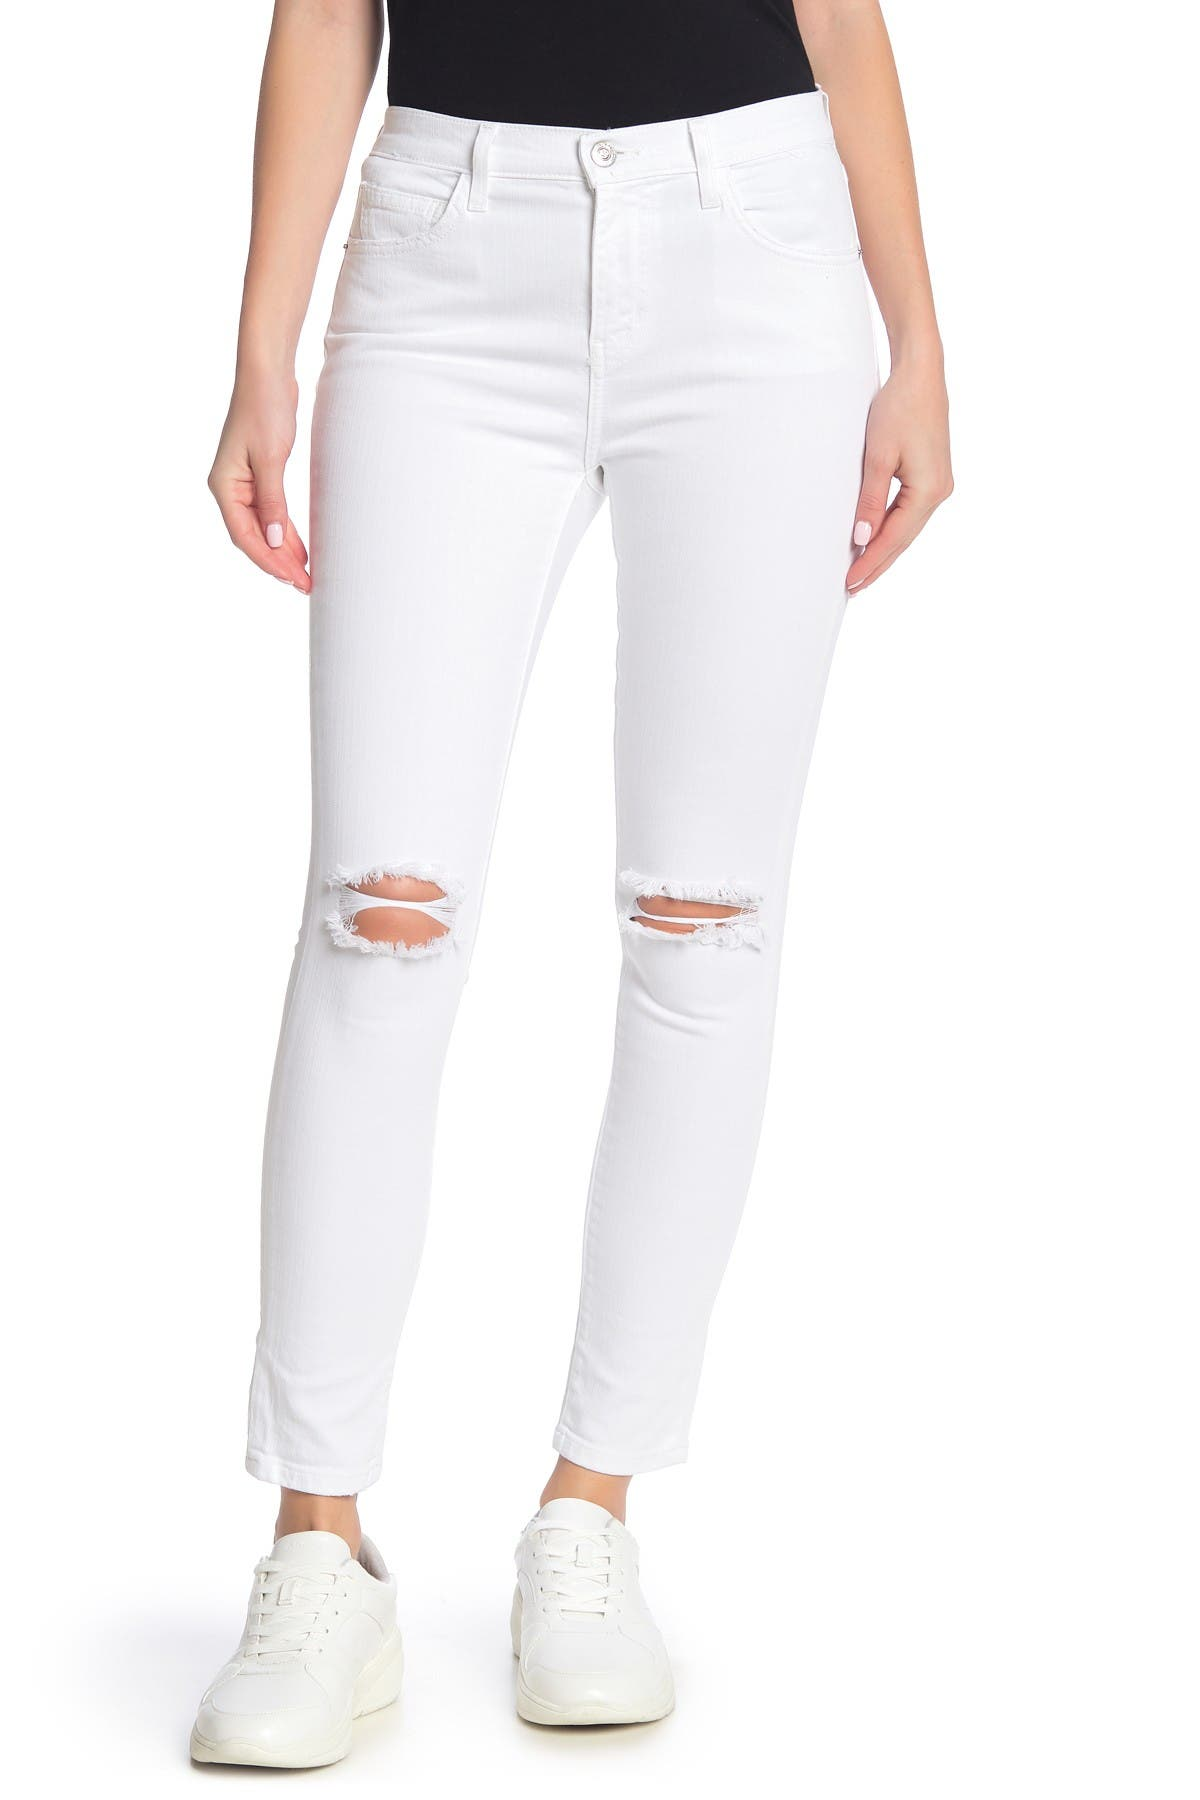 Image of Current/Elliott The High Waist Distressed Stiletto Jeans